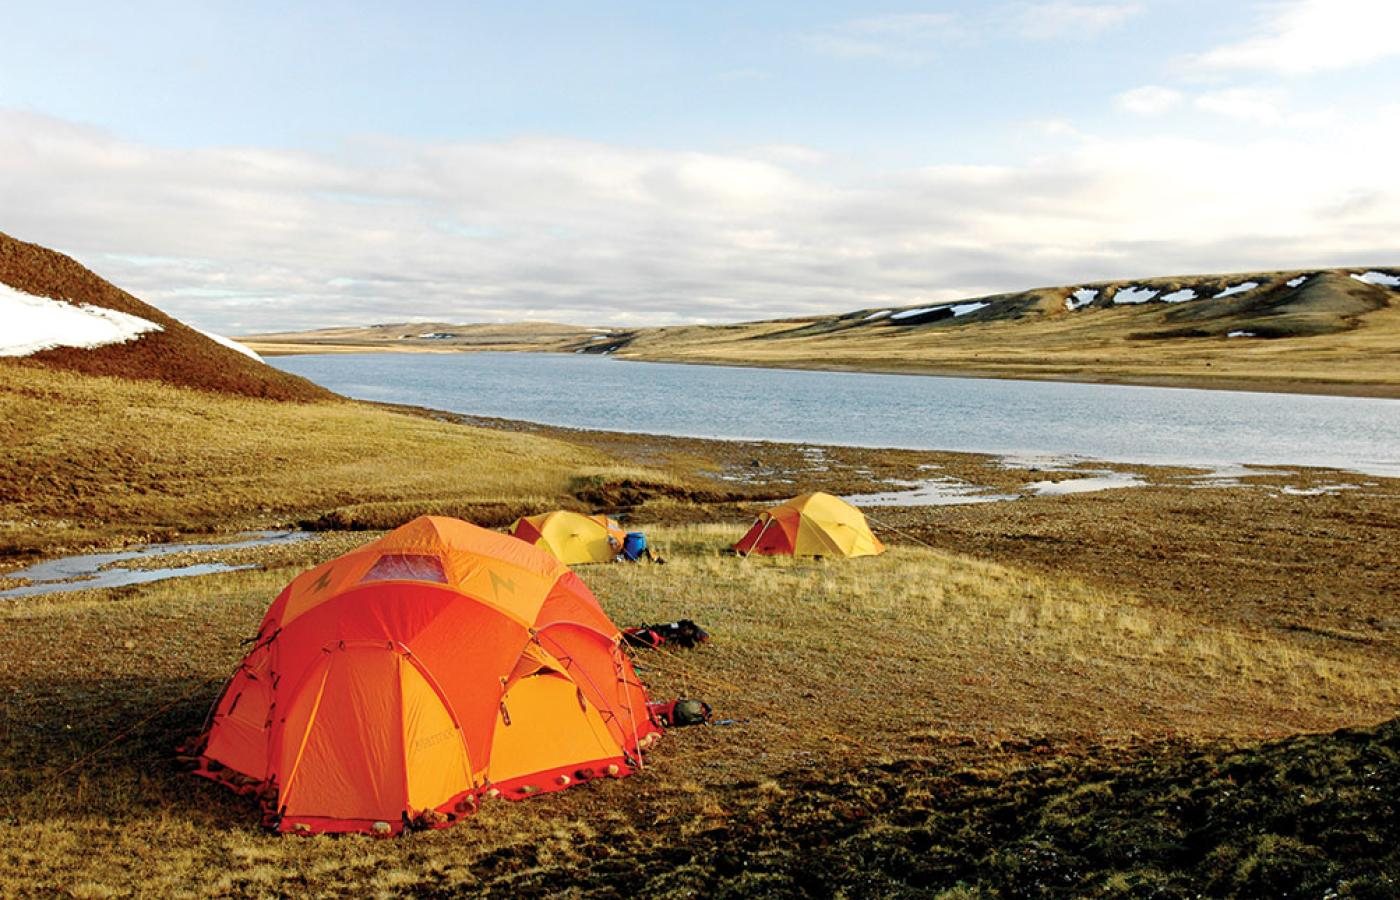 Tent camping in Aulavik National Park on Banks Island in Canada's Northwest Territories